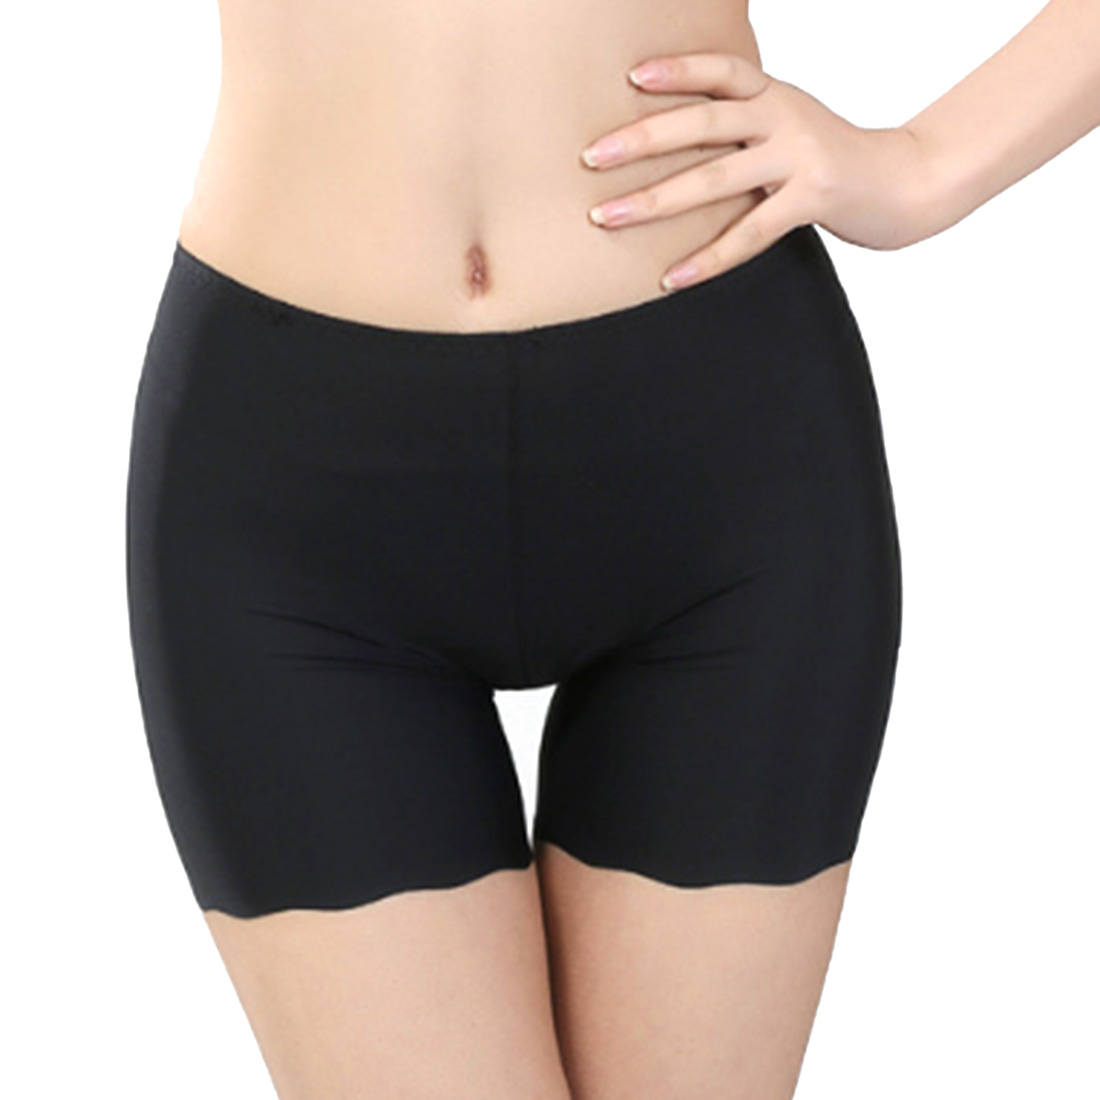 Hot Selling Female Sexy Women High Waist Ice Silk Briefs Seamless Elastic Pants Short Leggings White/ Black/ Skin